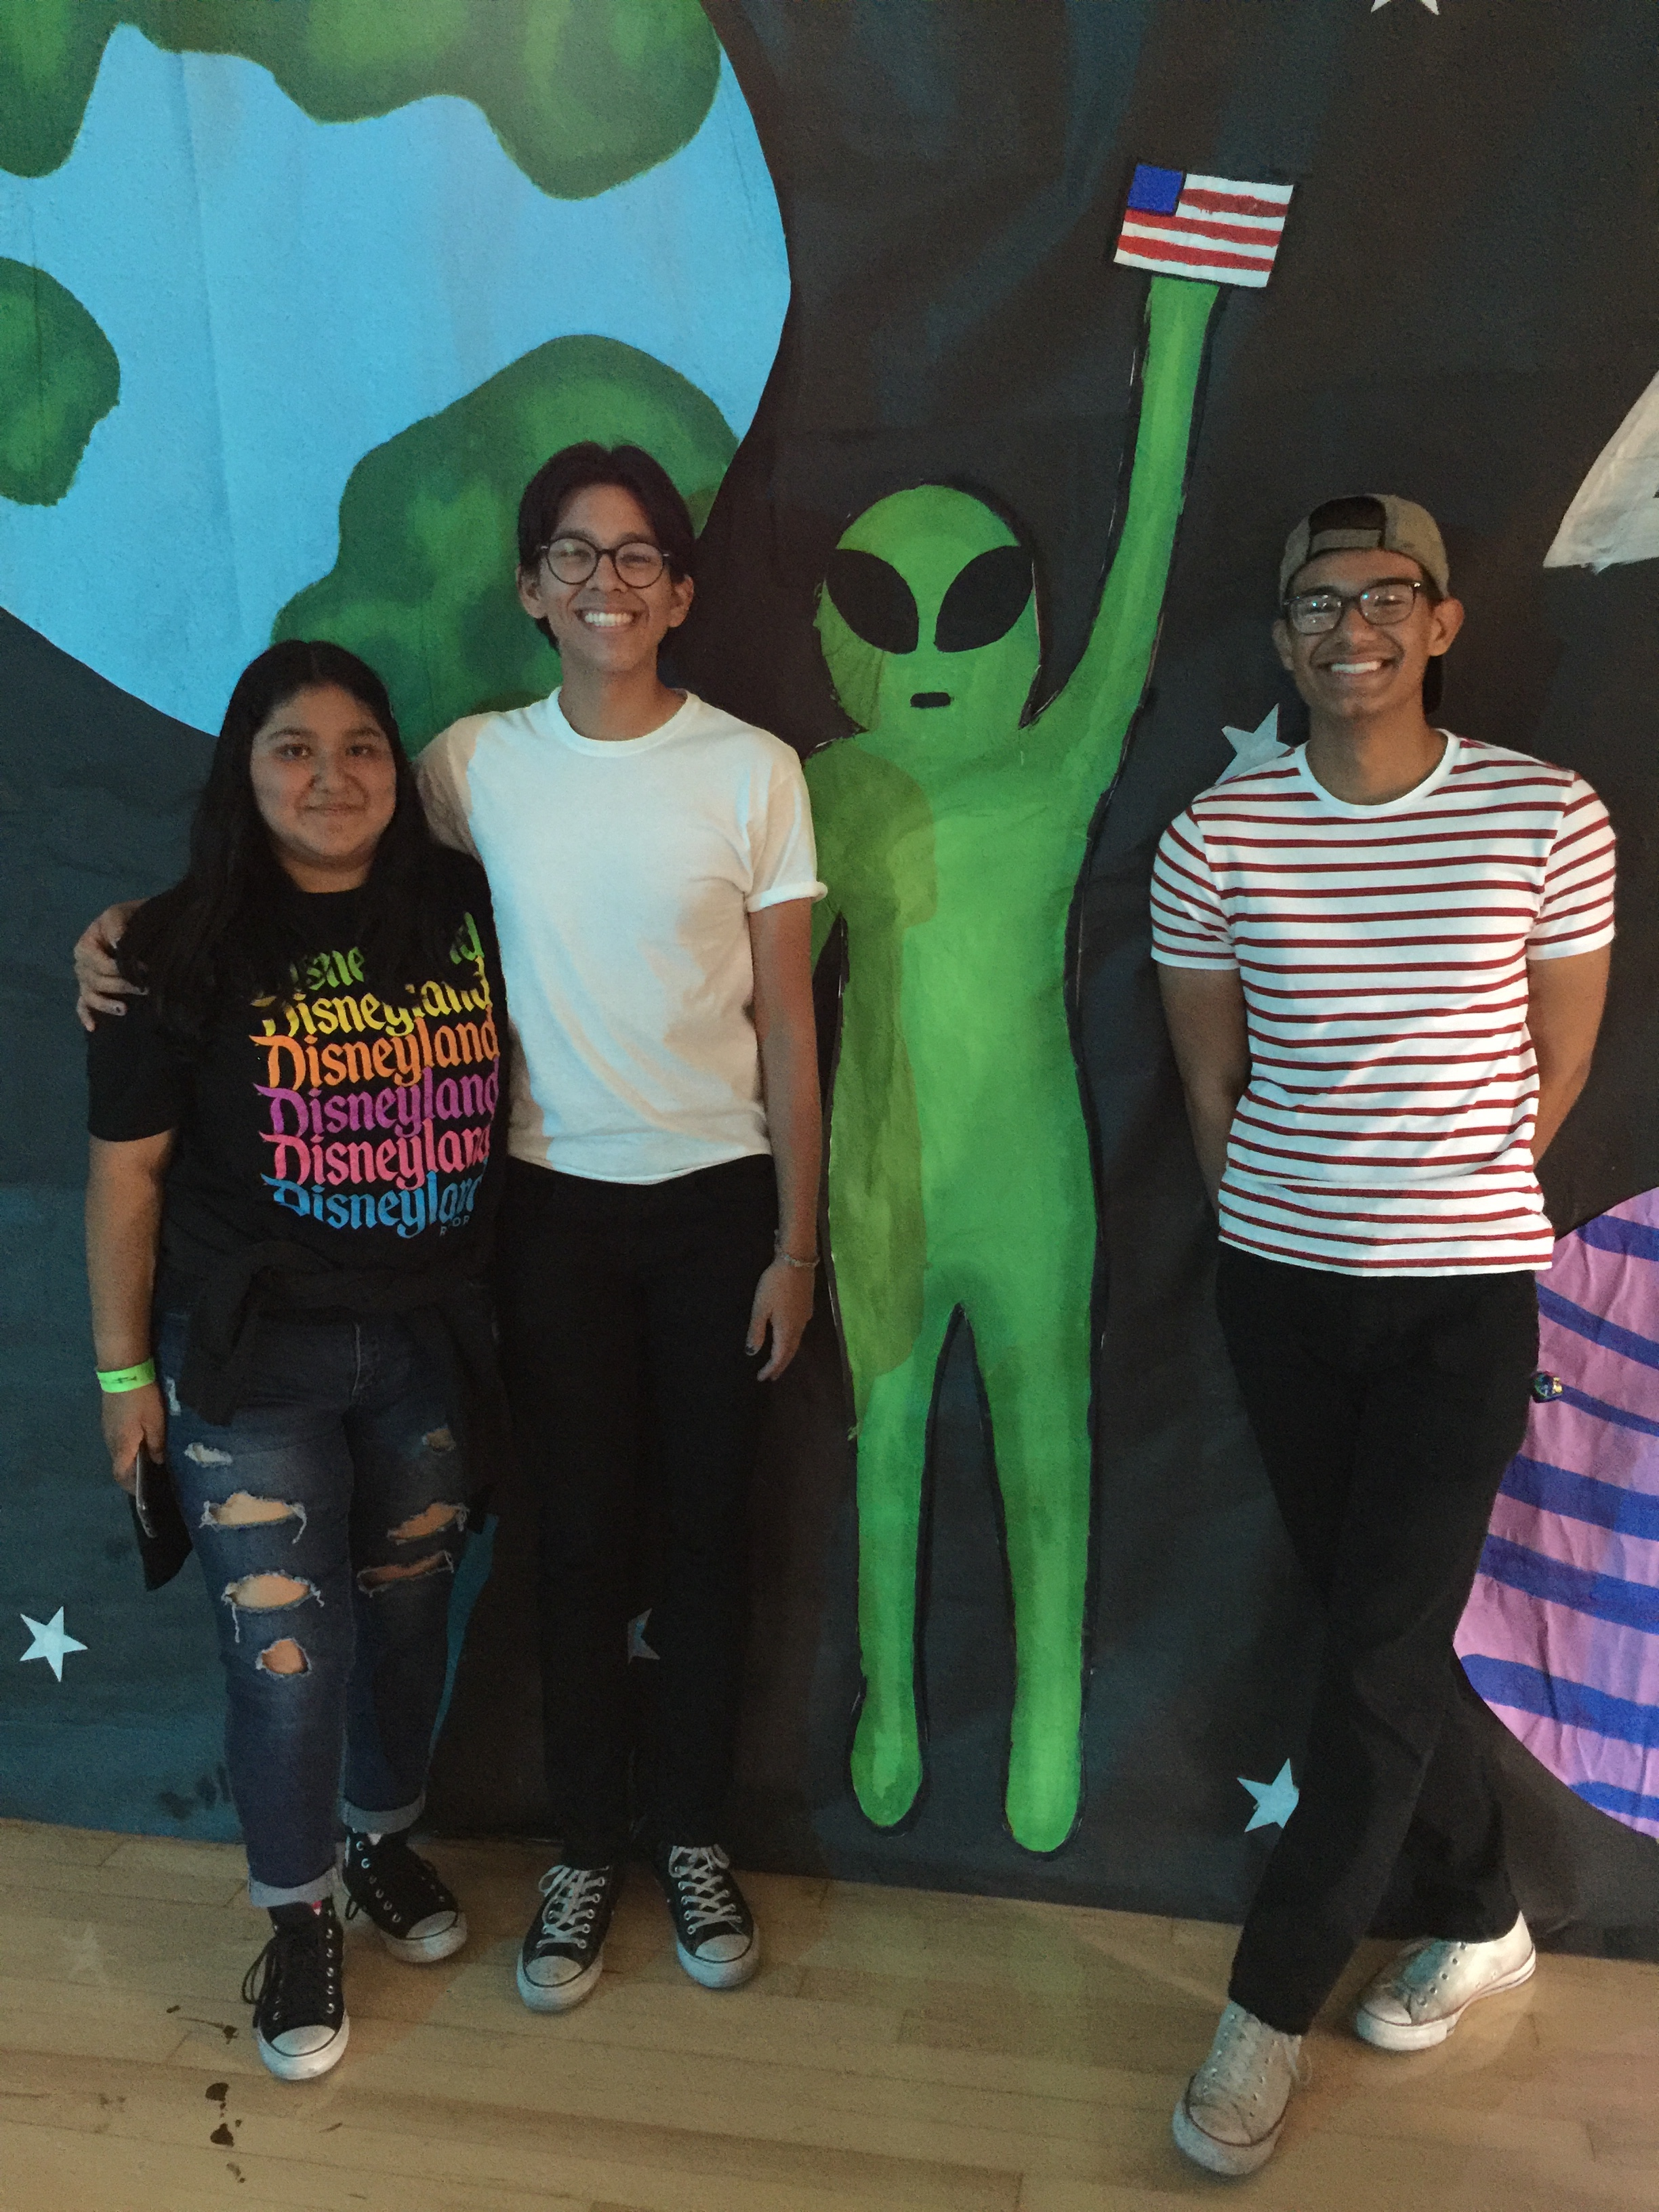 Leslie, JP   Luigi with alien at rally